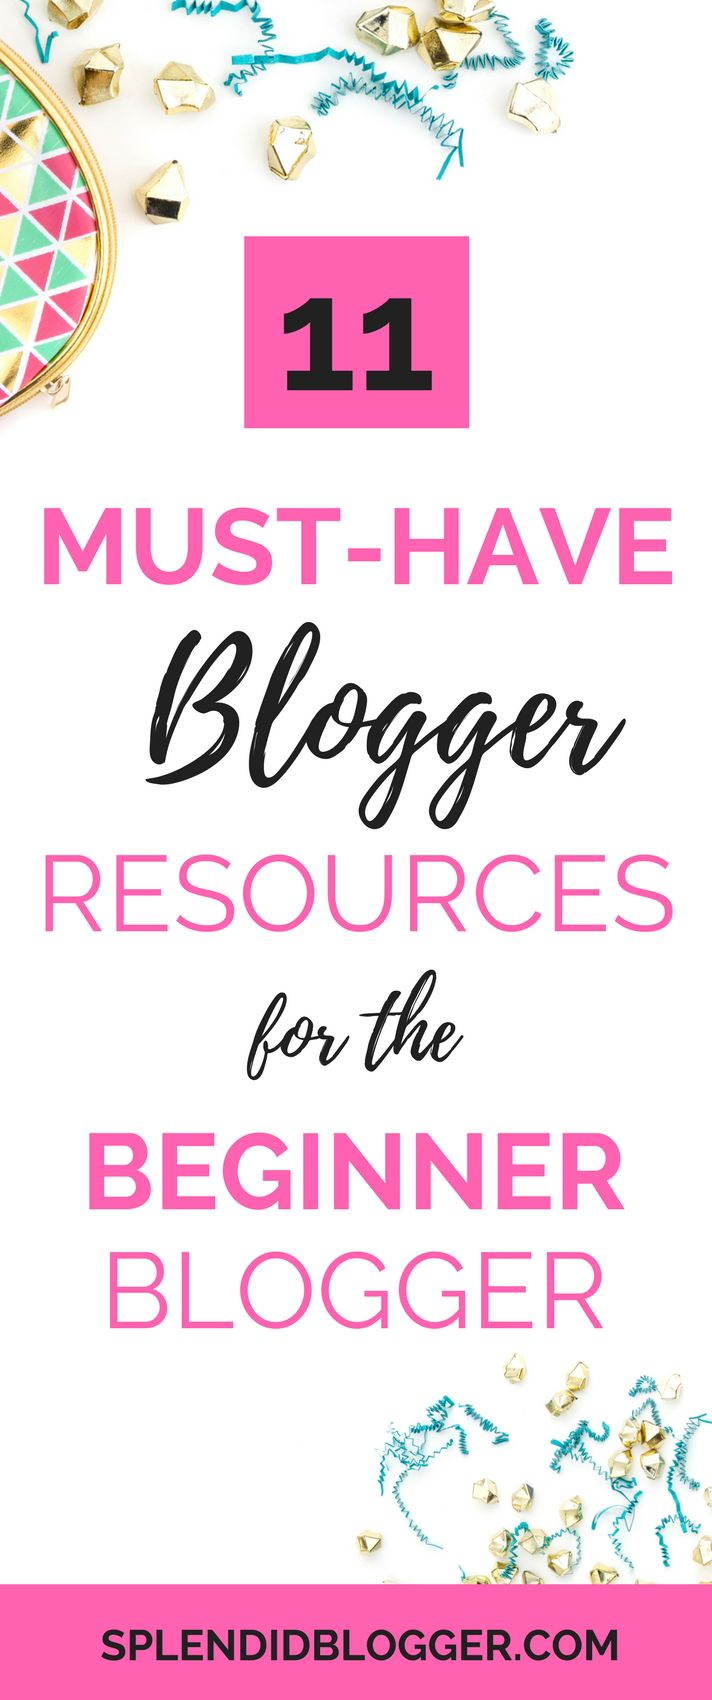 Being a new blogger can be downright confusing! So many things to get done and so many choices to make in terms of set-up, design, and functionality. Let me help you narrow it down with some of my favorite blogger resources. | new blogger | beginner blogger | blogger resources | how to start a blog | splendidblogger.com